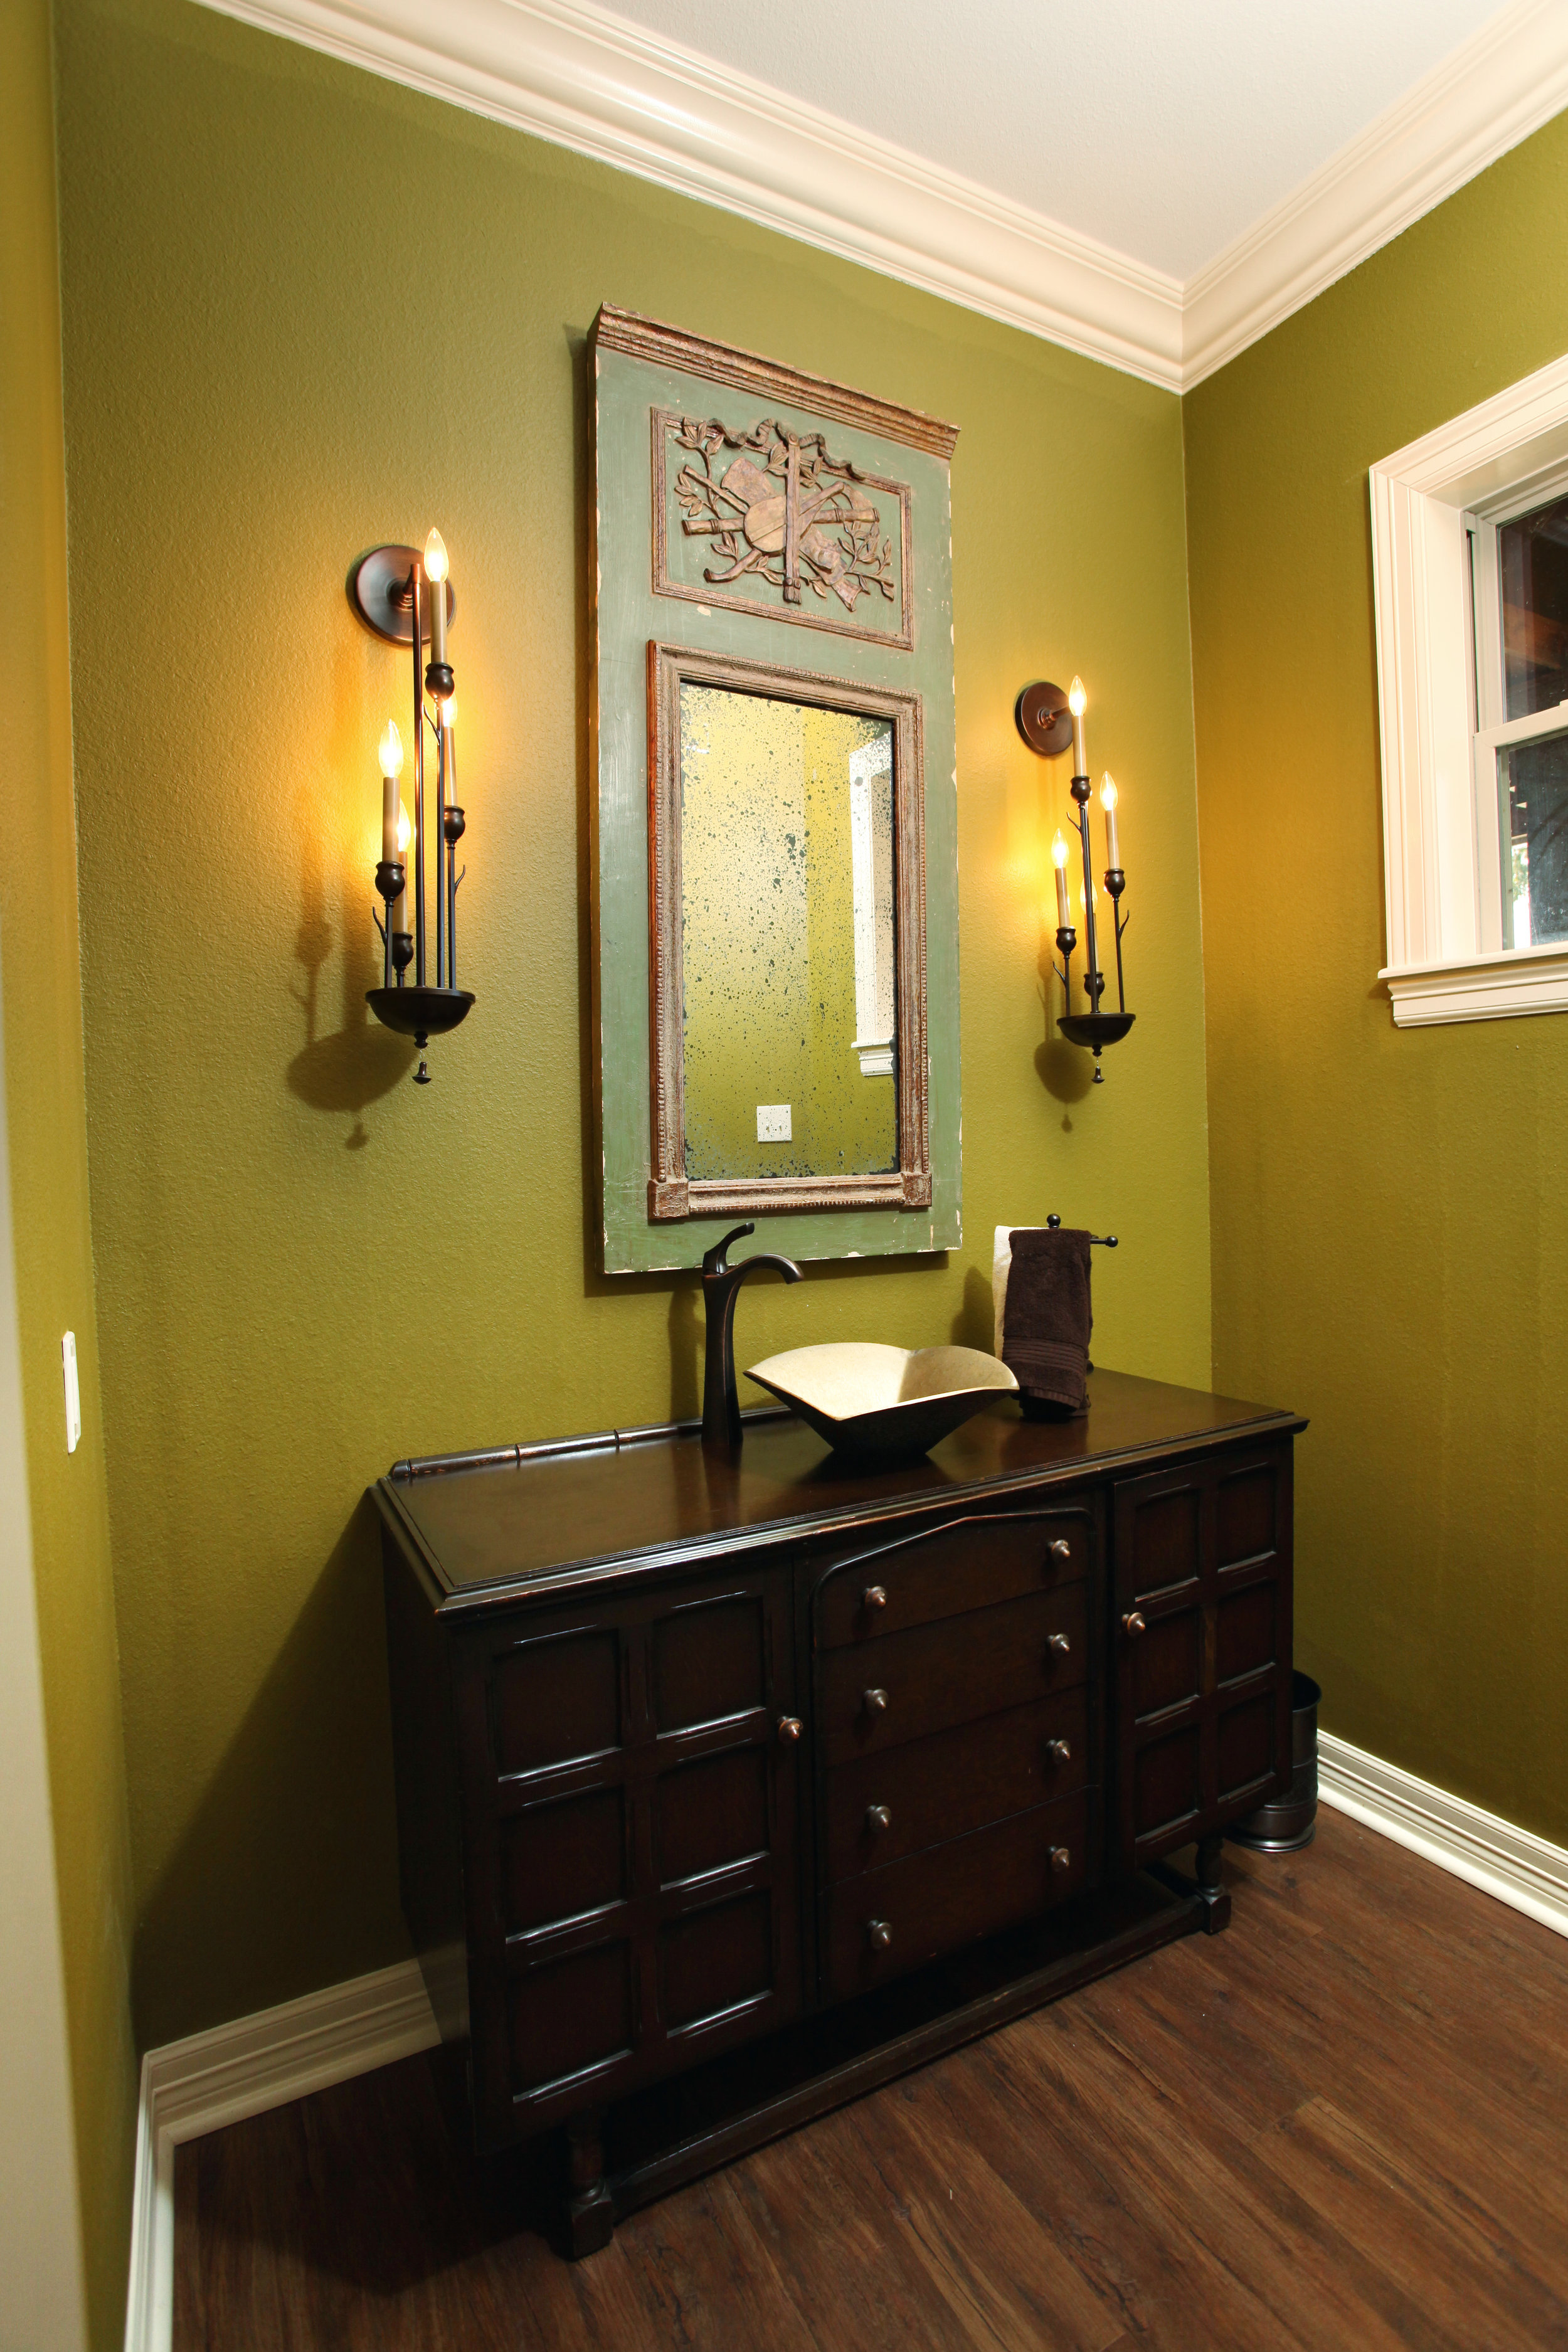 Unique sconces flanking an antique trumeau mirror over a repurposed chest of drawers in my clients ranch-house powder room make for a one-of-a-kind impression.